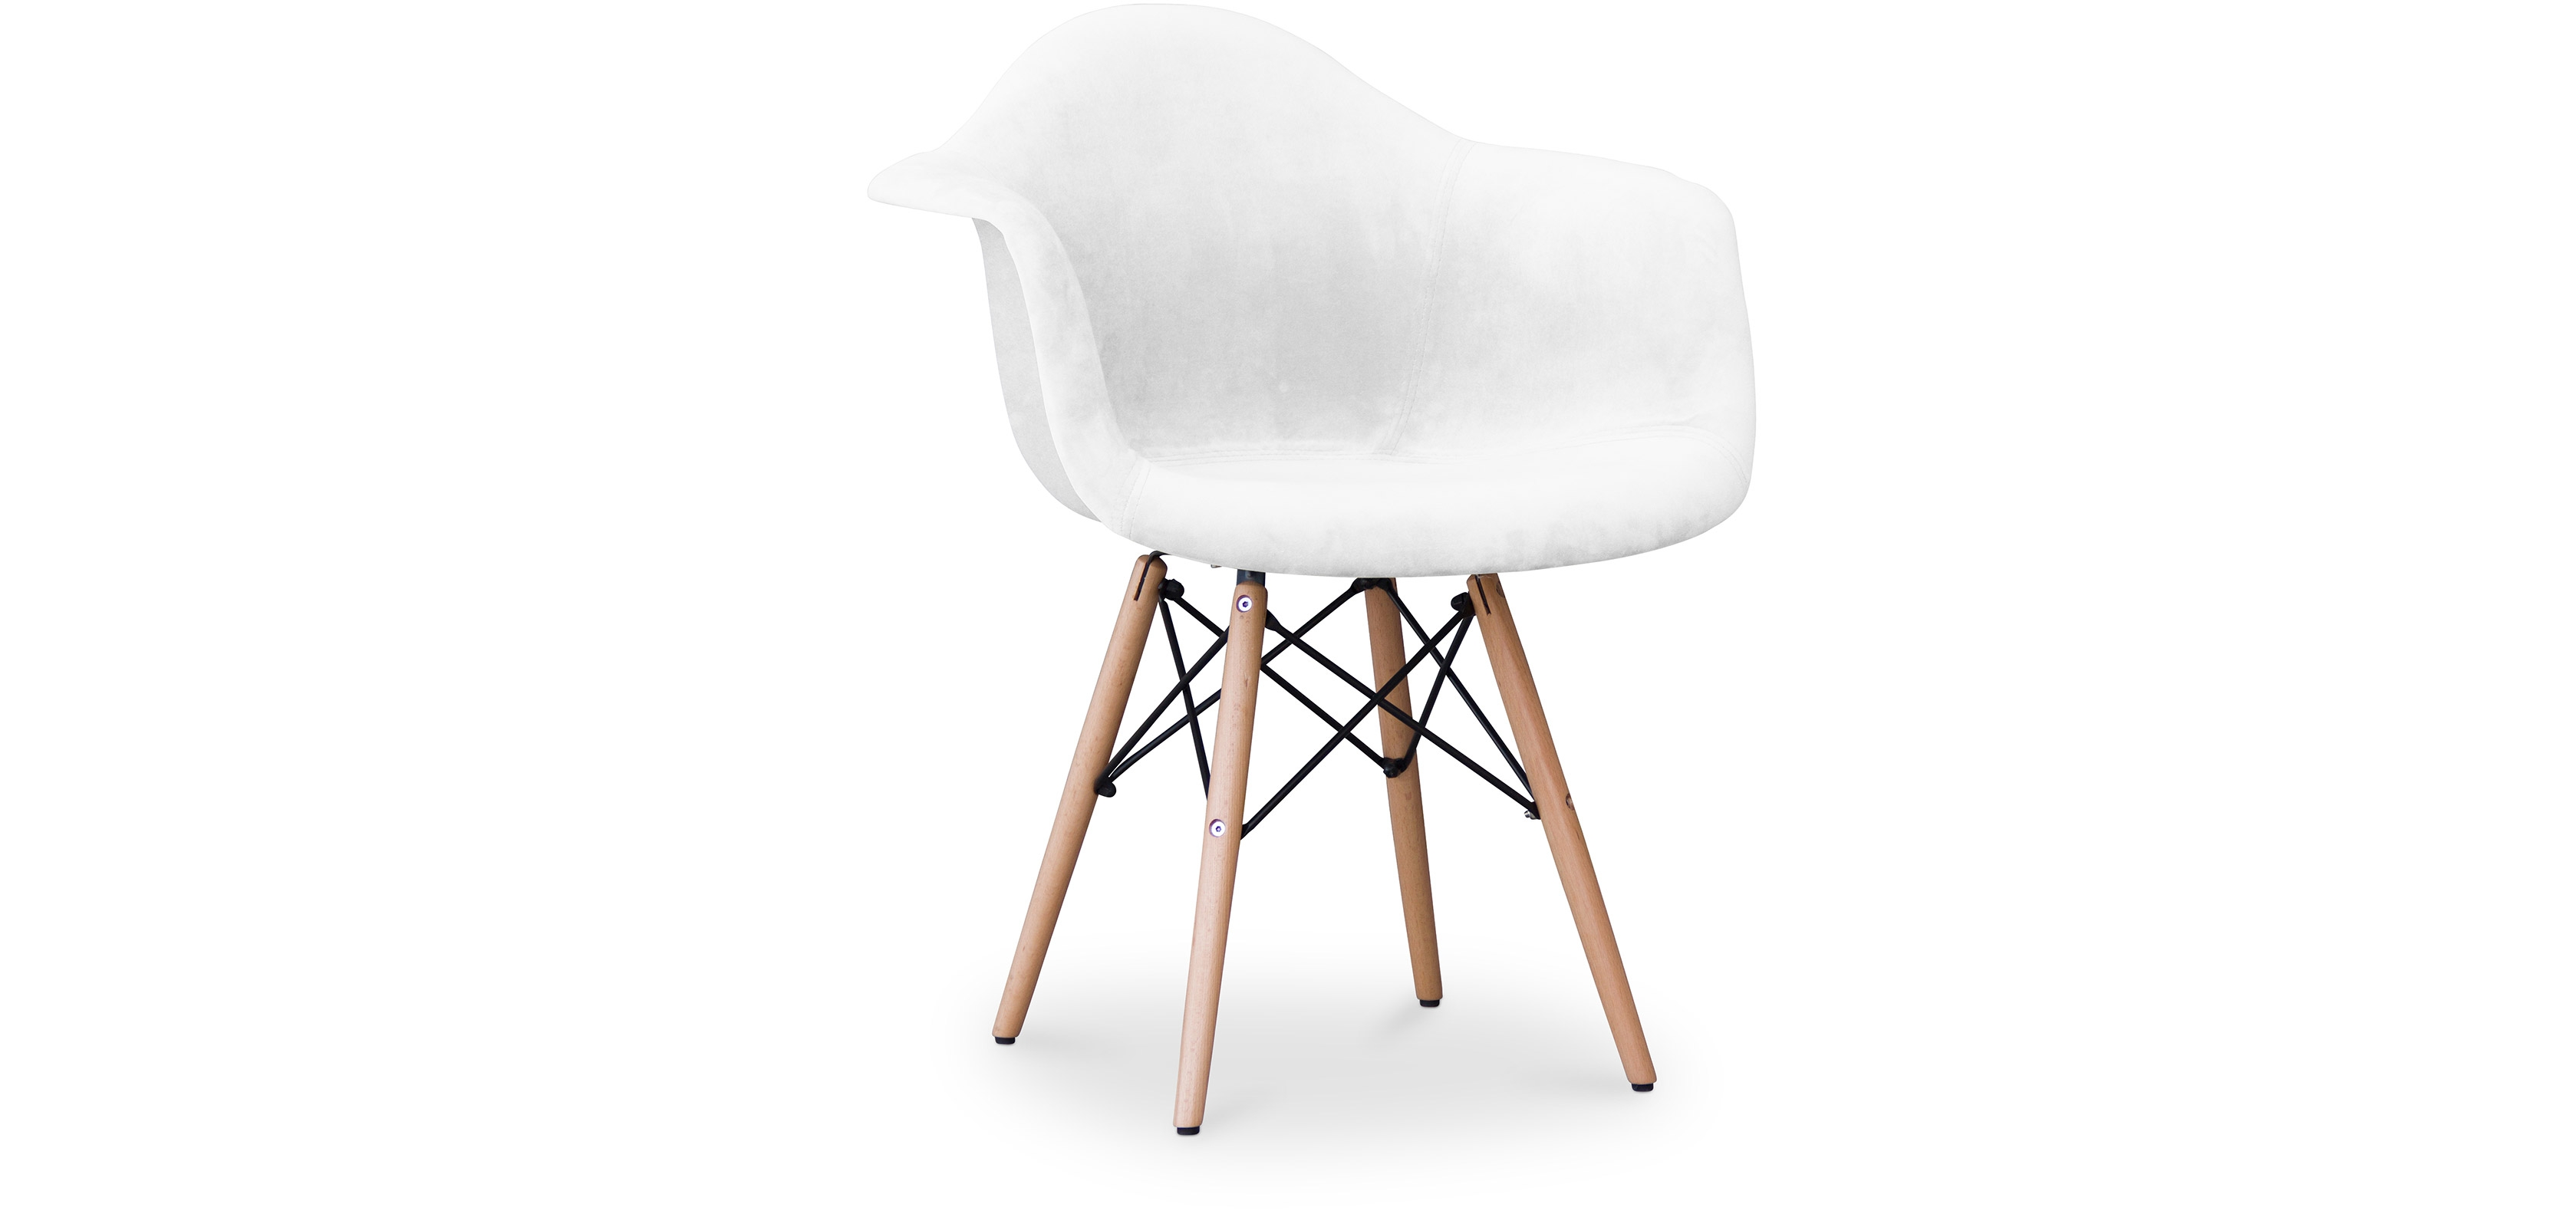 Buy Dawood Chair - Full Fabric White 59032 - in the UK